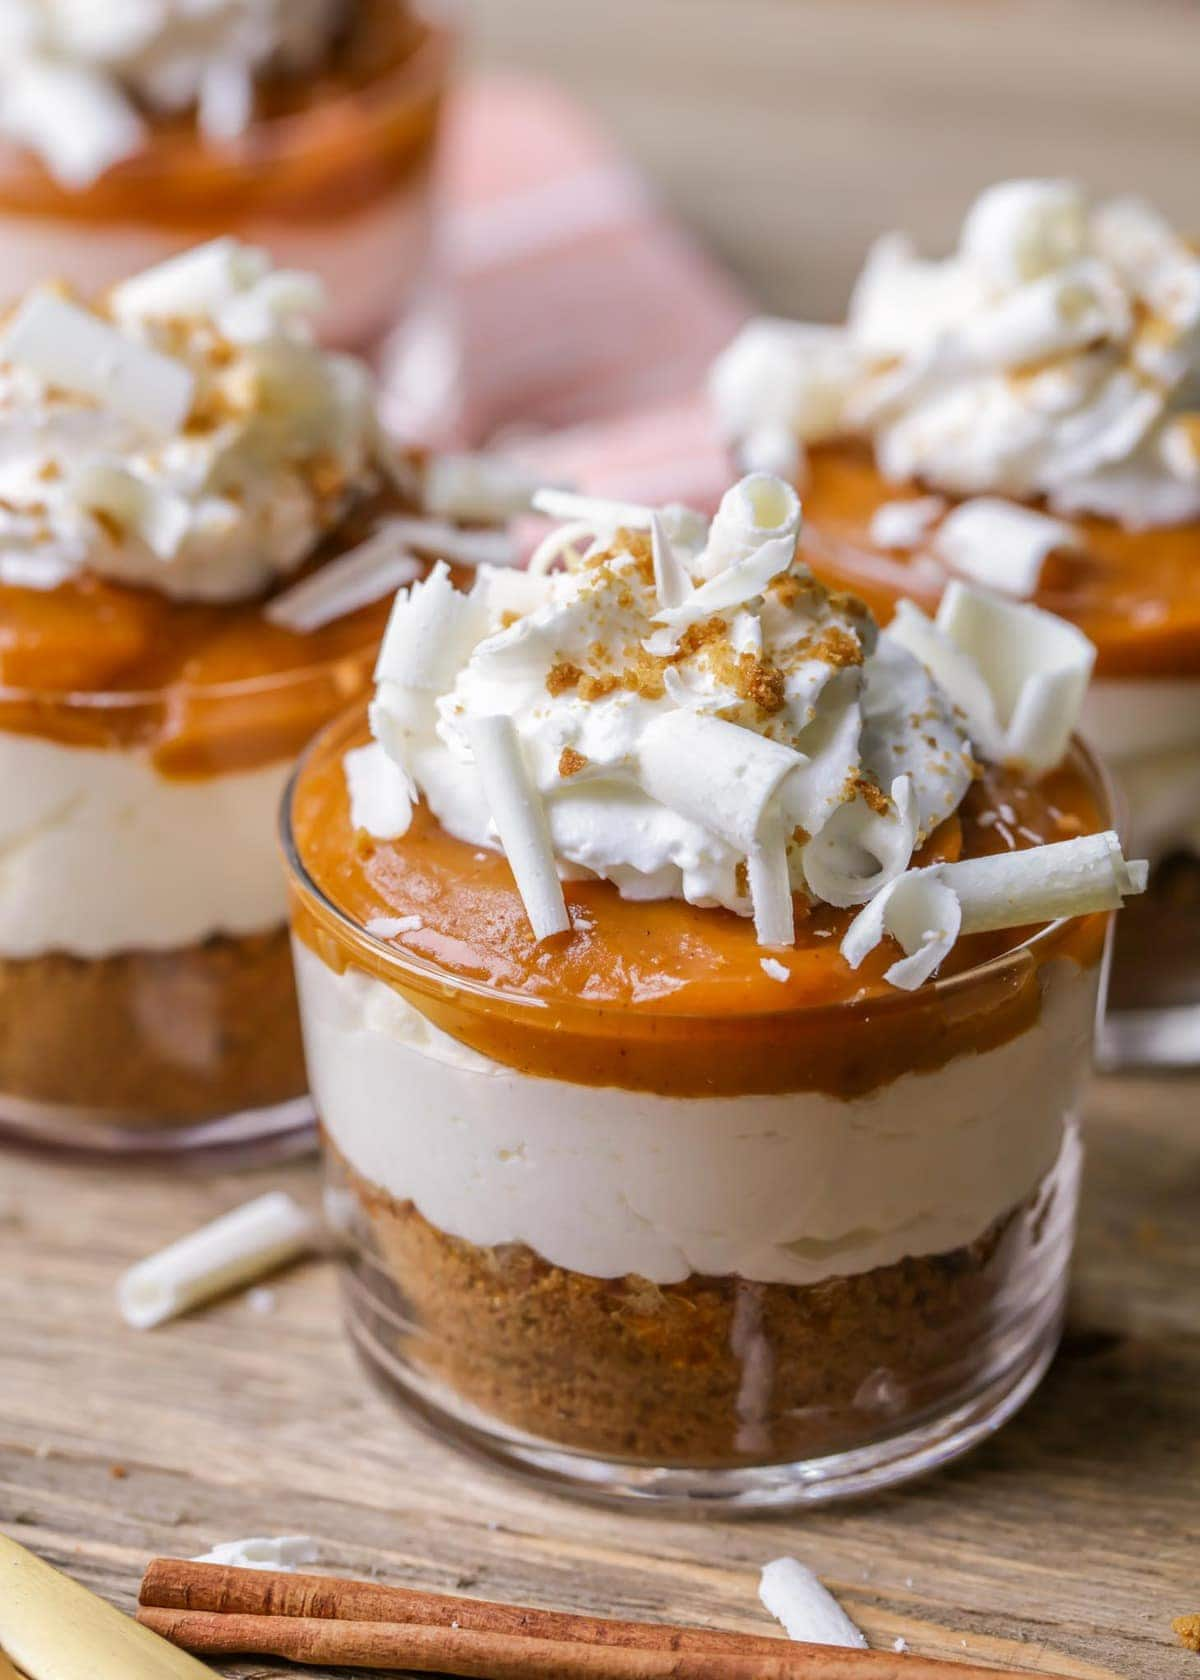 Pumpkin Pudding Parfaits - a ginger snap base, cream cheese layer, pumpkin pudding layer and topped with whipped cream, crumbs and white chocolate curls!